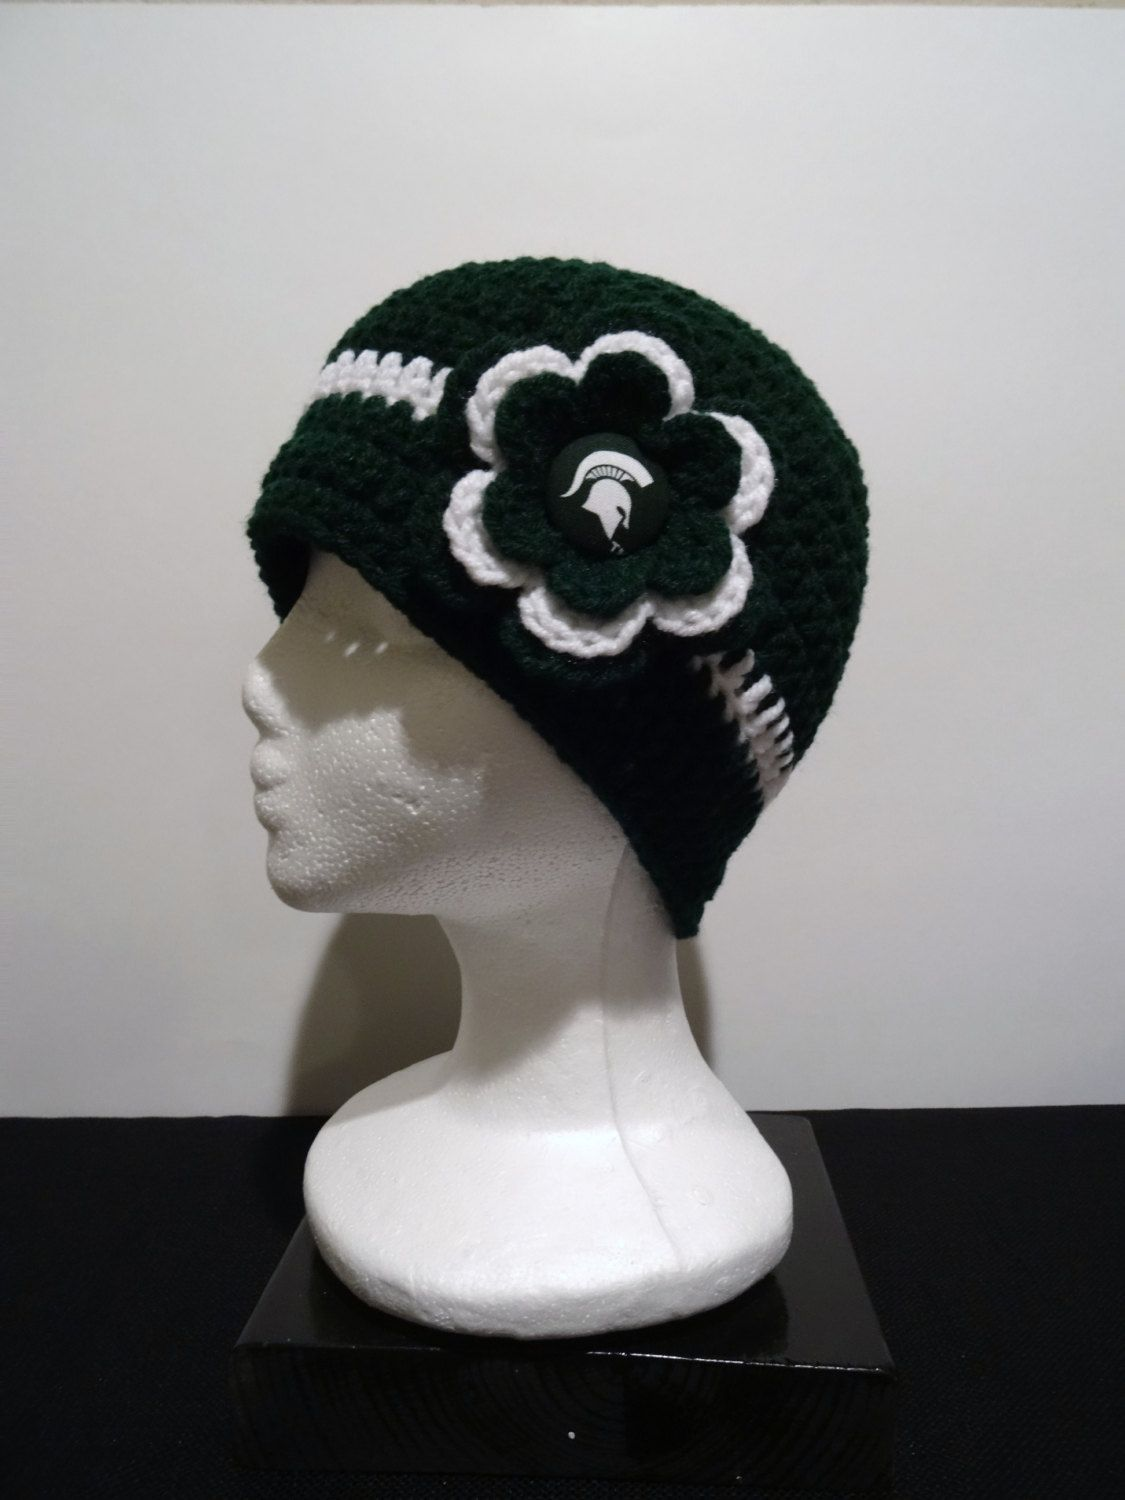 638f53f41b2 Michigan state spartans alternate crocheted michigan state university michigan  state spartans jpg 1125x1500 Msu crochet hat